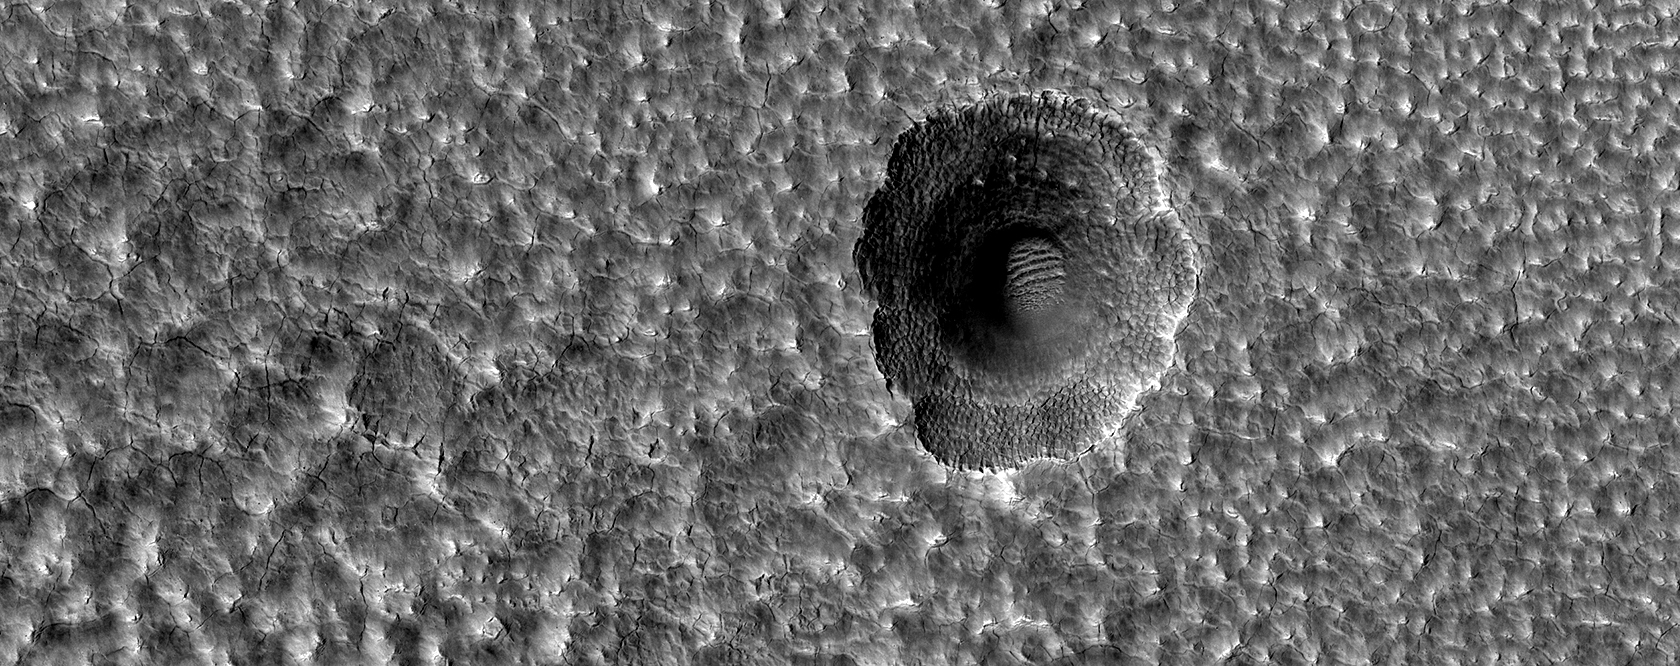 A Crater Enlarged by the Sublimation of Ice